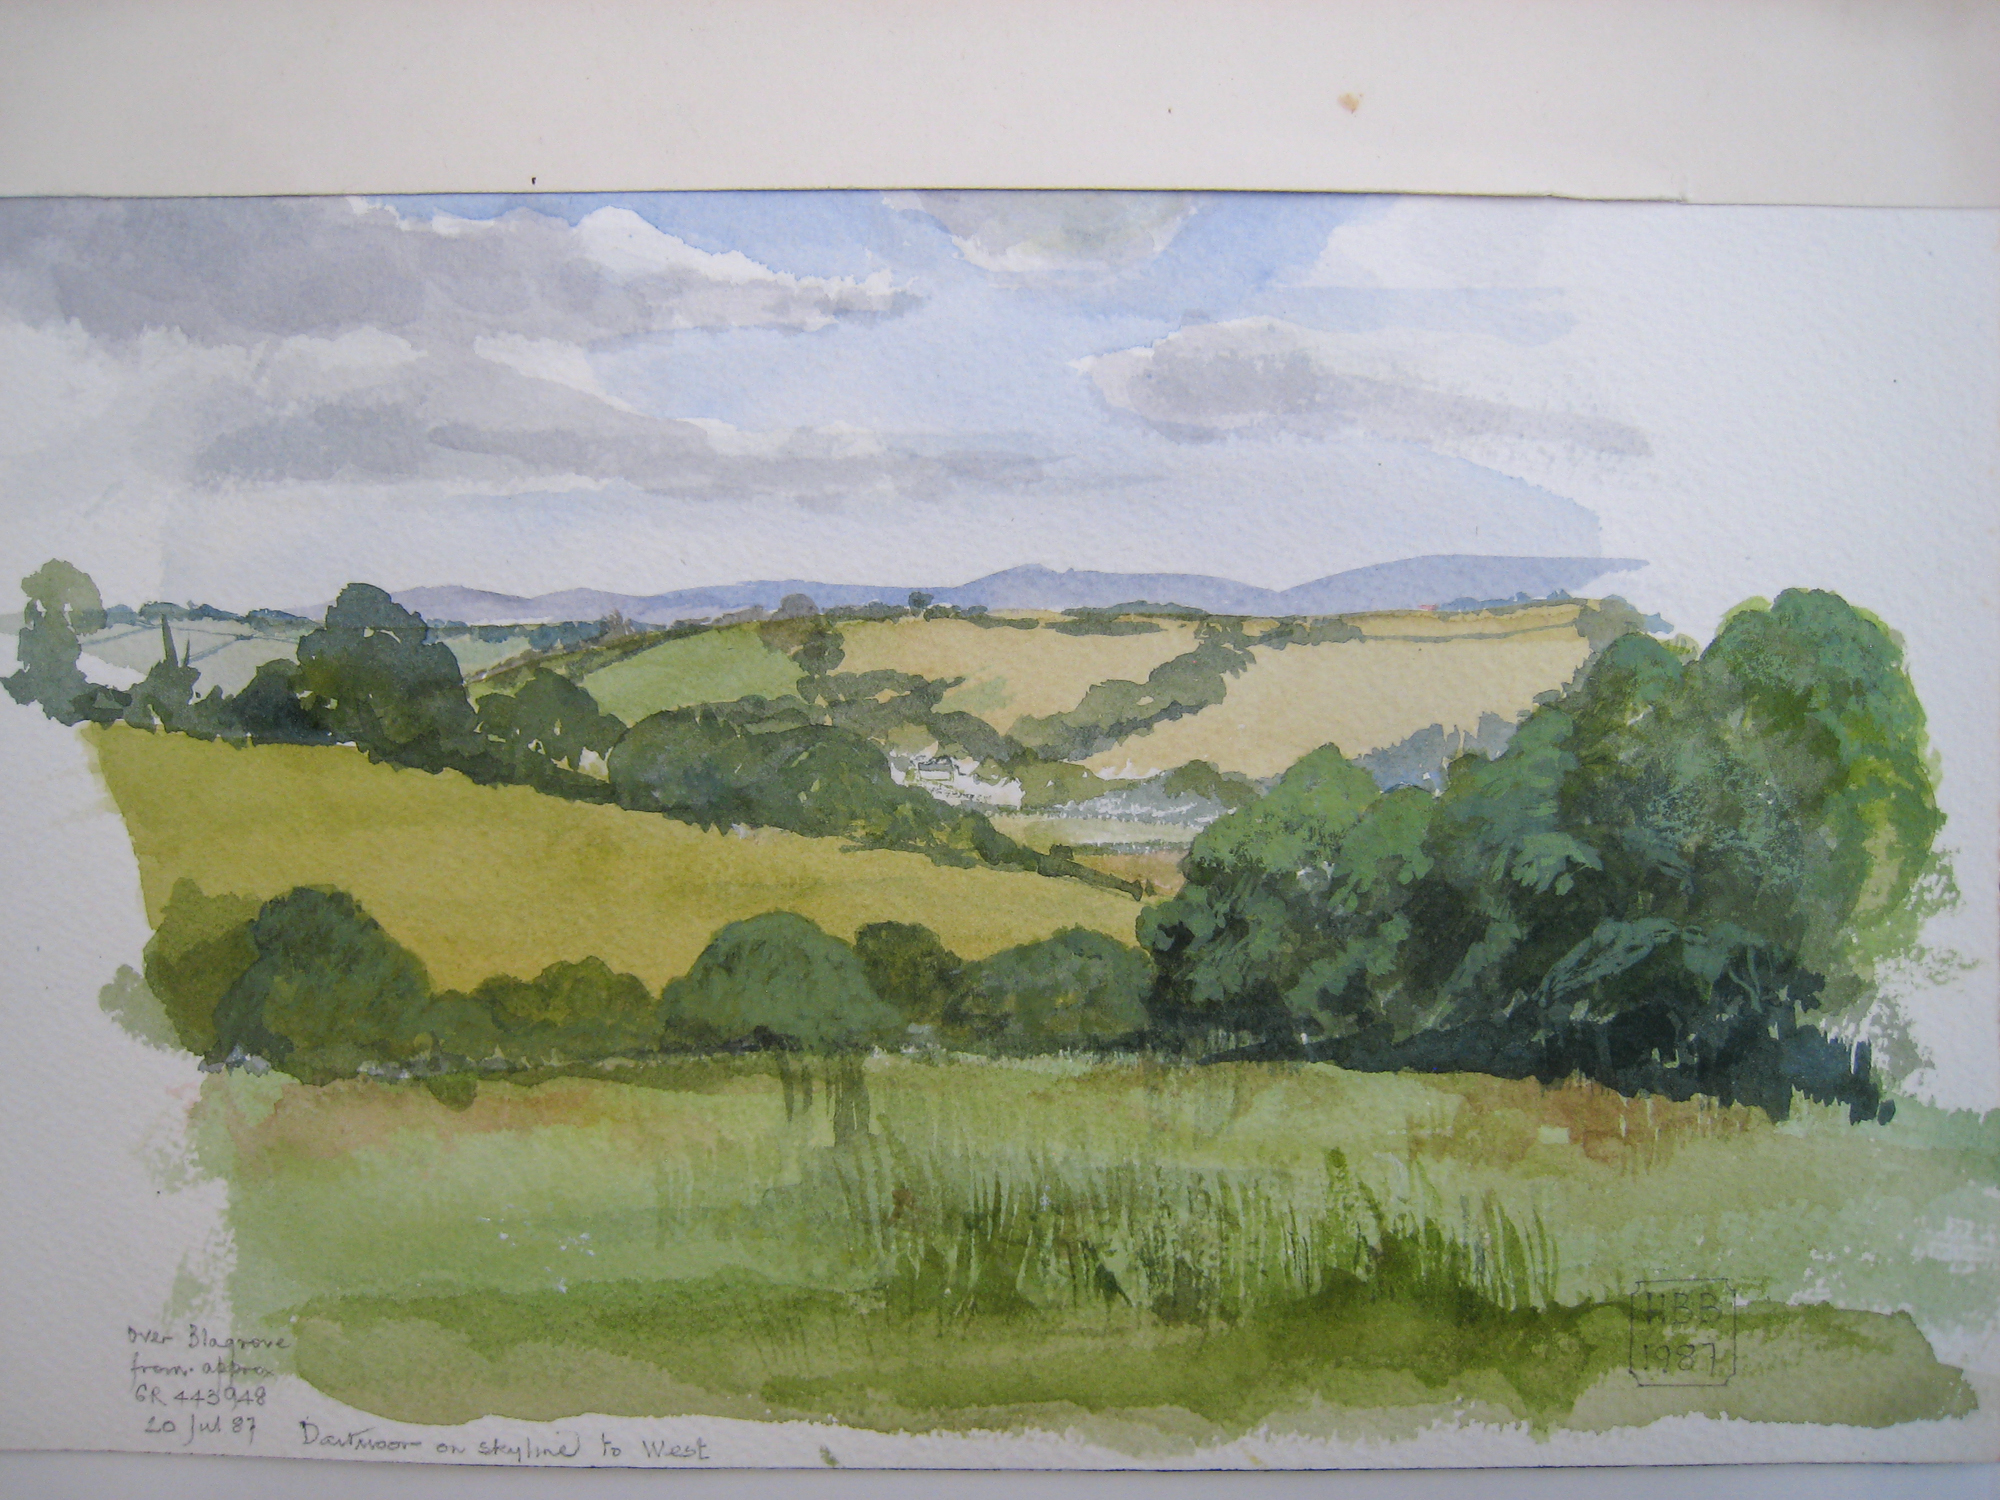 Germansweek landscapes, over Blagrove from approx GR443948, Dartmoor on skyline to West